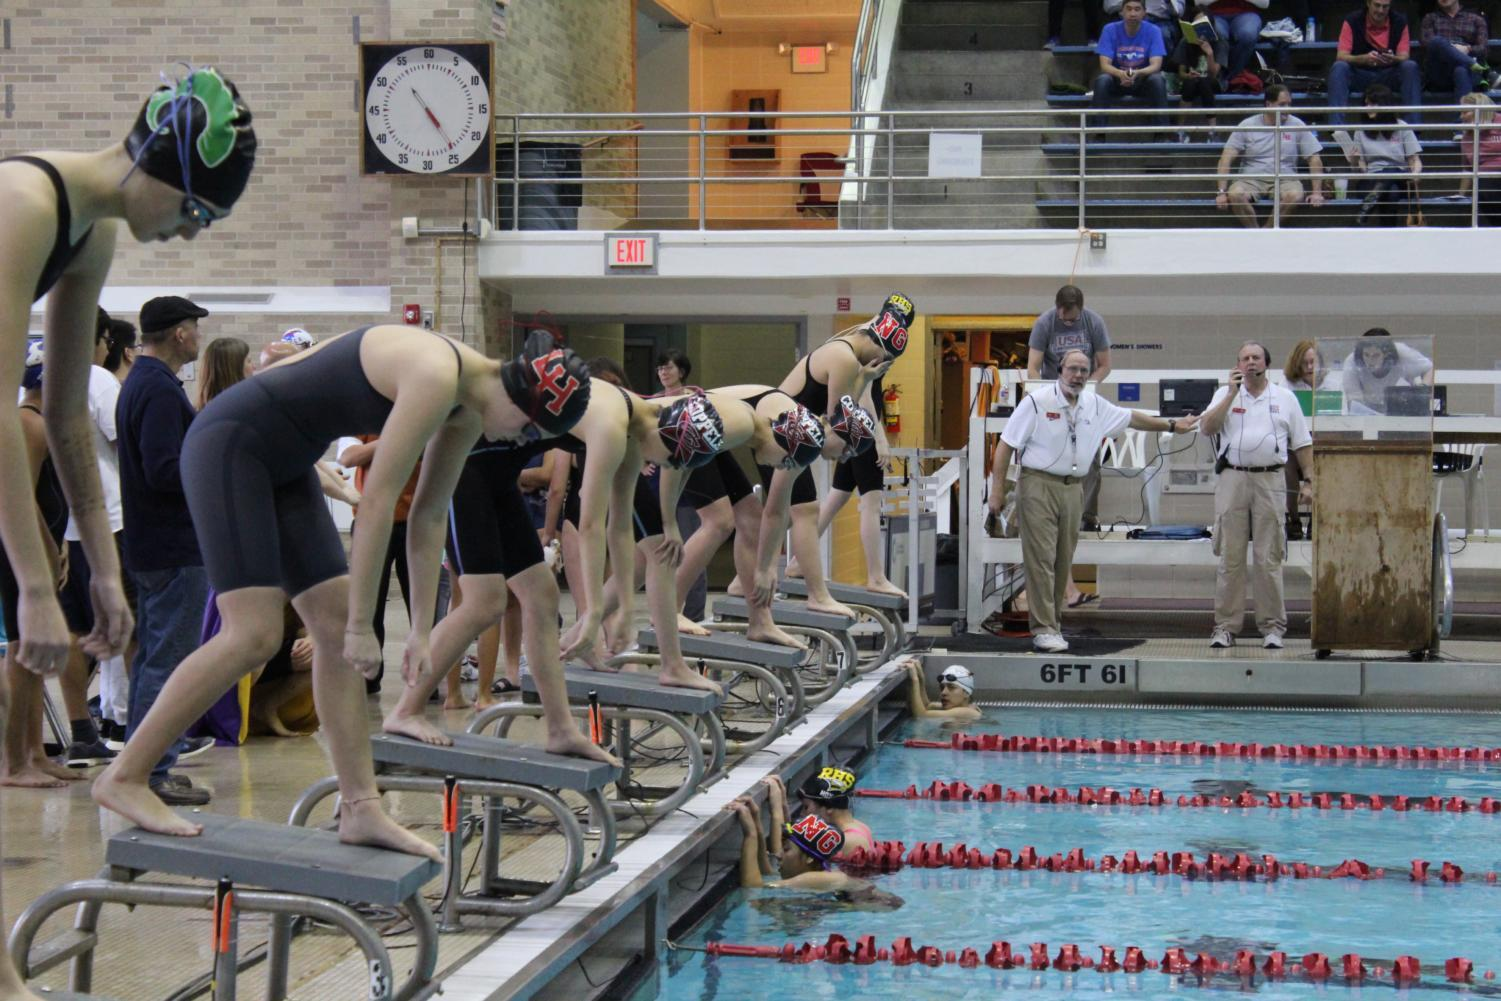 On Friday, Jan. 26, Coppell high school varsity swimmers competed at the districts meet at the Westside Aquatic Center in Lewisville, Texas. The Coppell swim team was able to surpass many previous school and district records and sent one swimmer on to state competition.